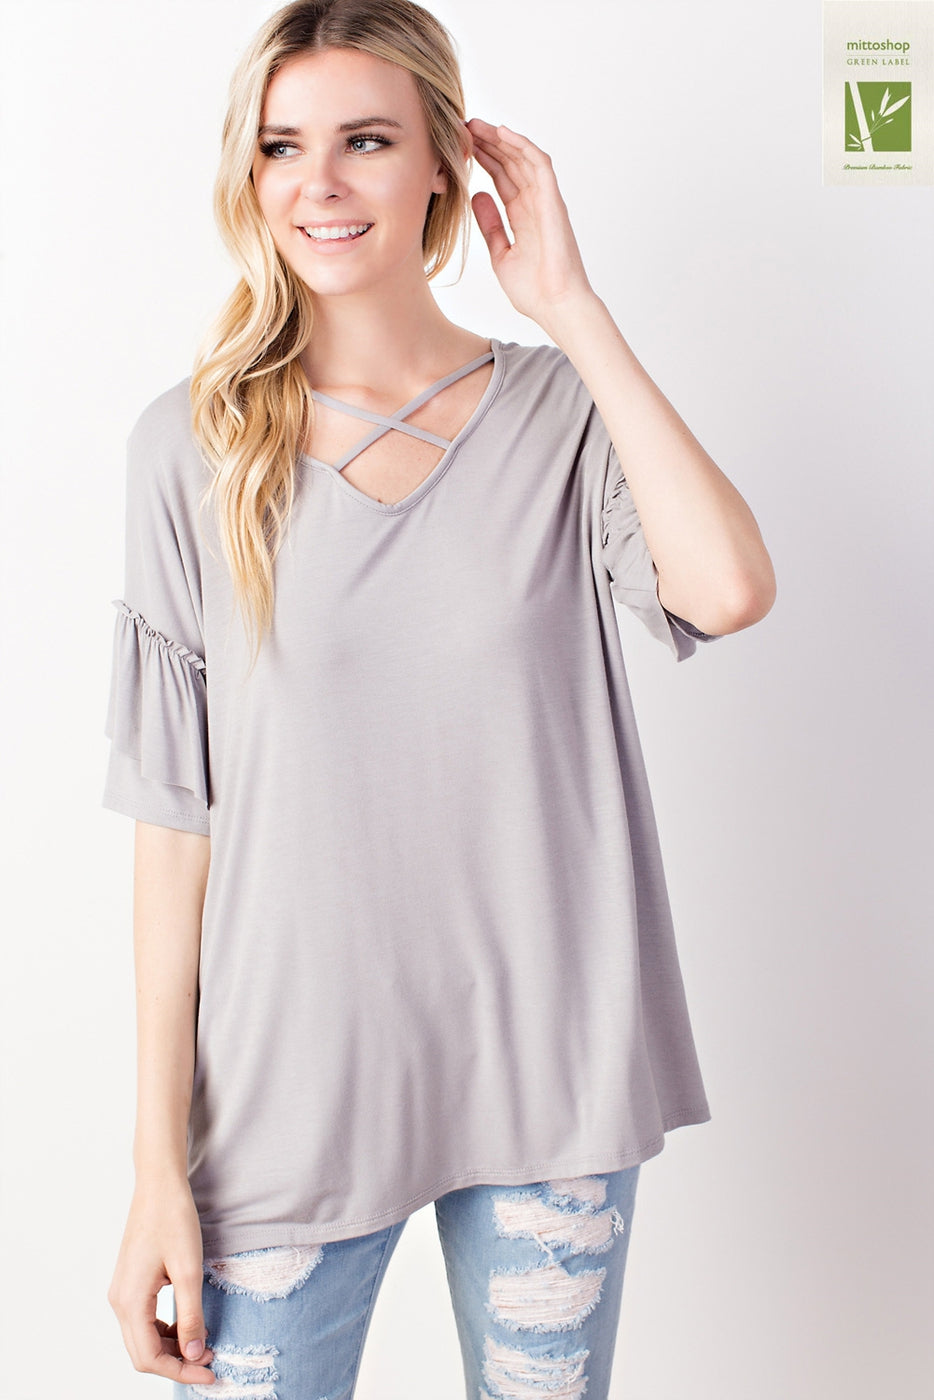 Criss Cross Front Ruffled Sleeve Top - Silver